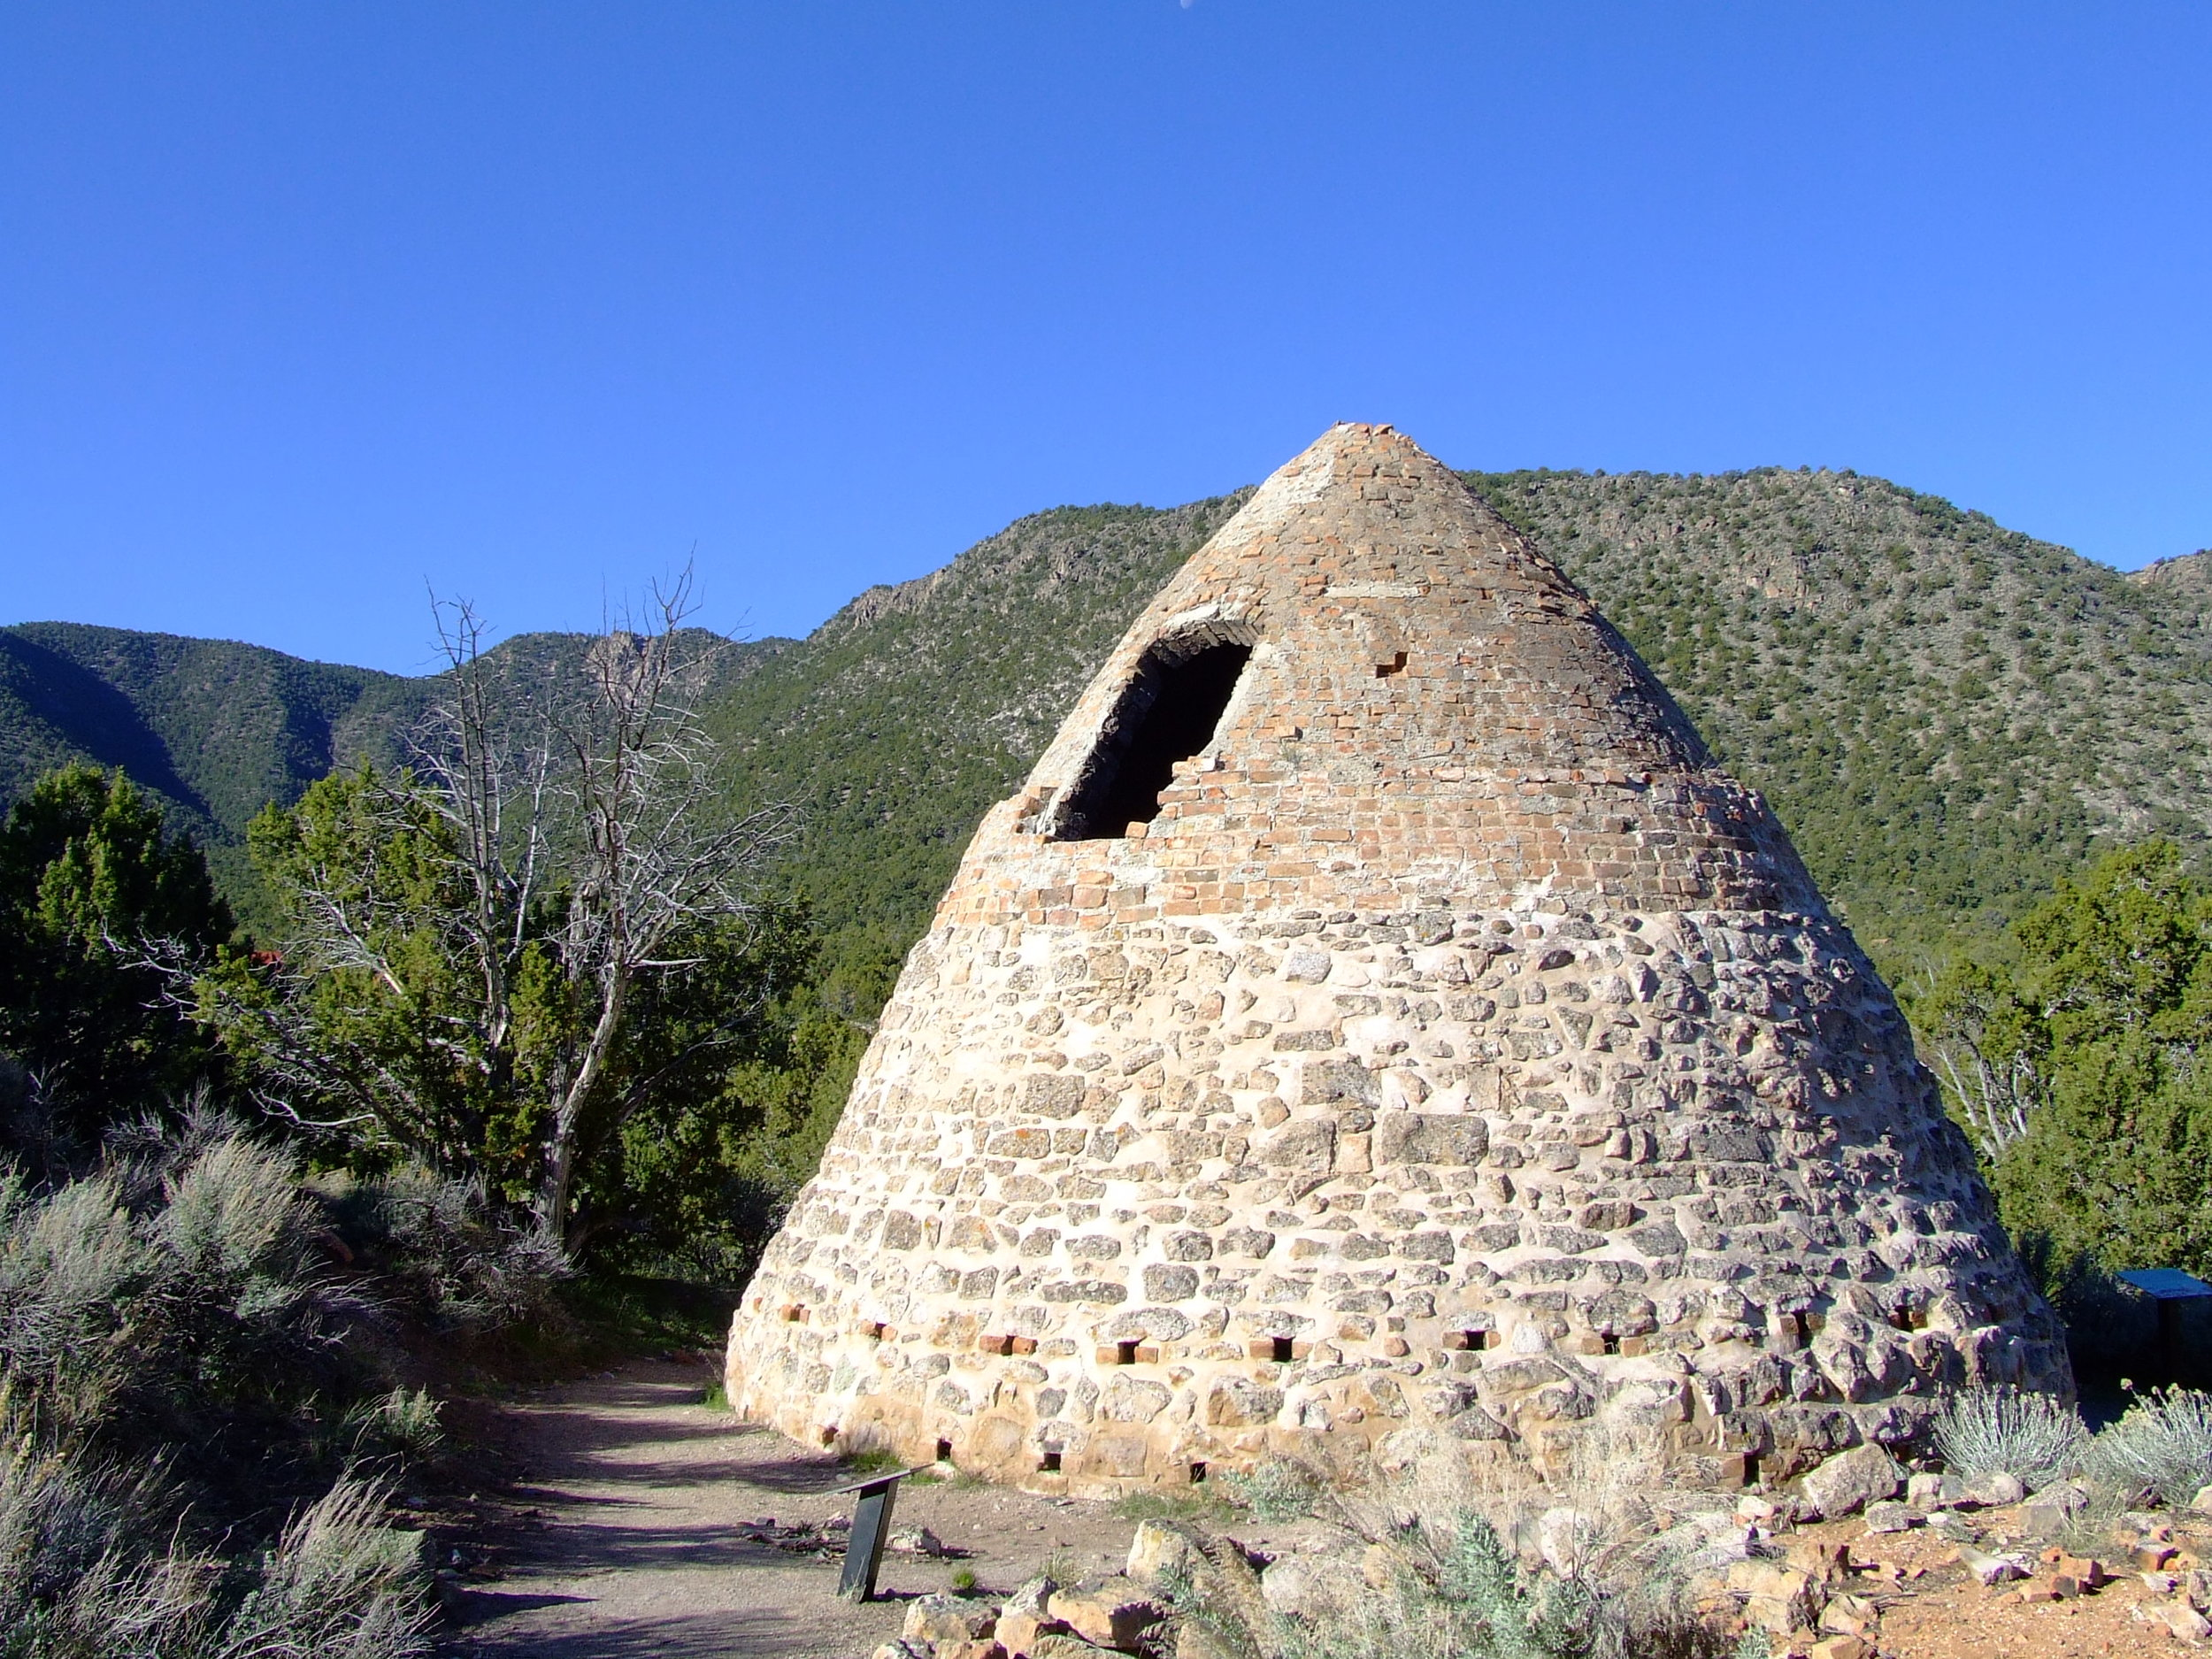 One of the remaining charcoal kilns at Old Iron Town.